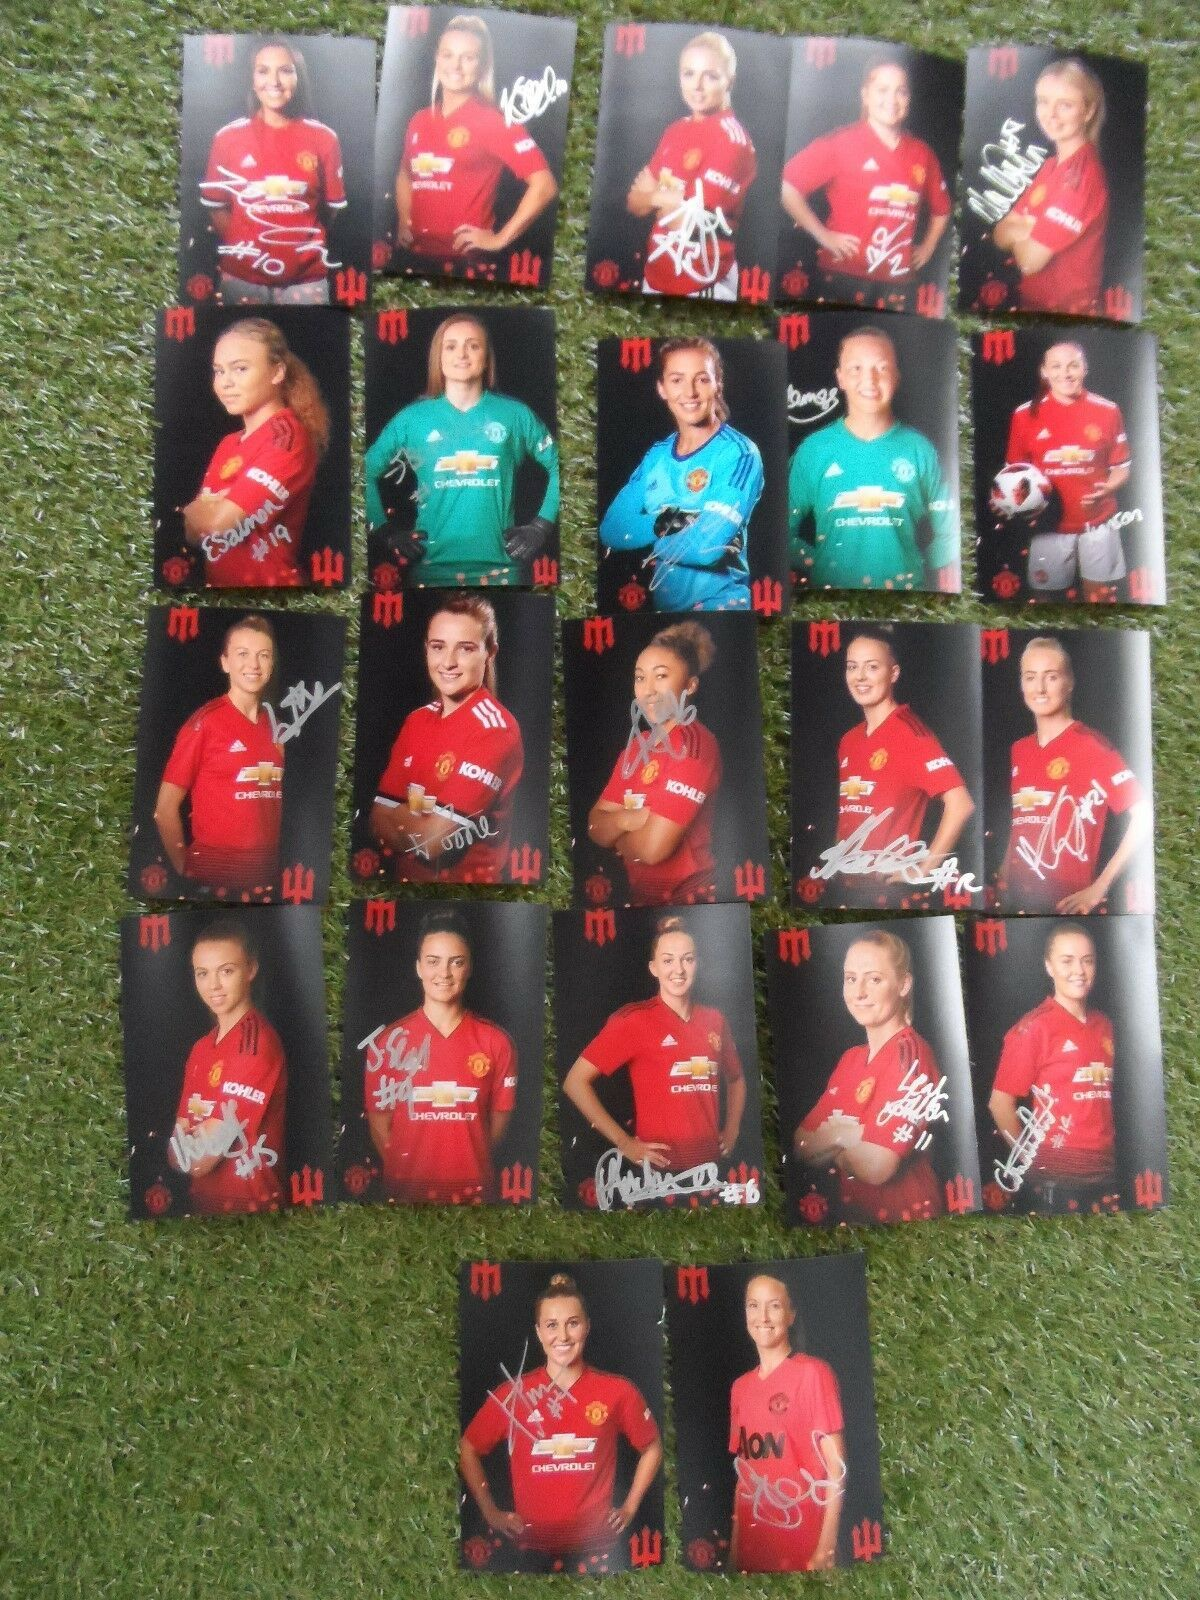 Manchester United Women Hand Signed 2018 2019 Individual Photos 22 Autographs Ebay Manchester United Manchester United Players Manchester